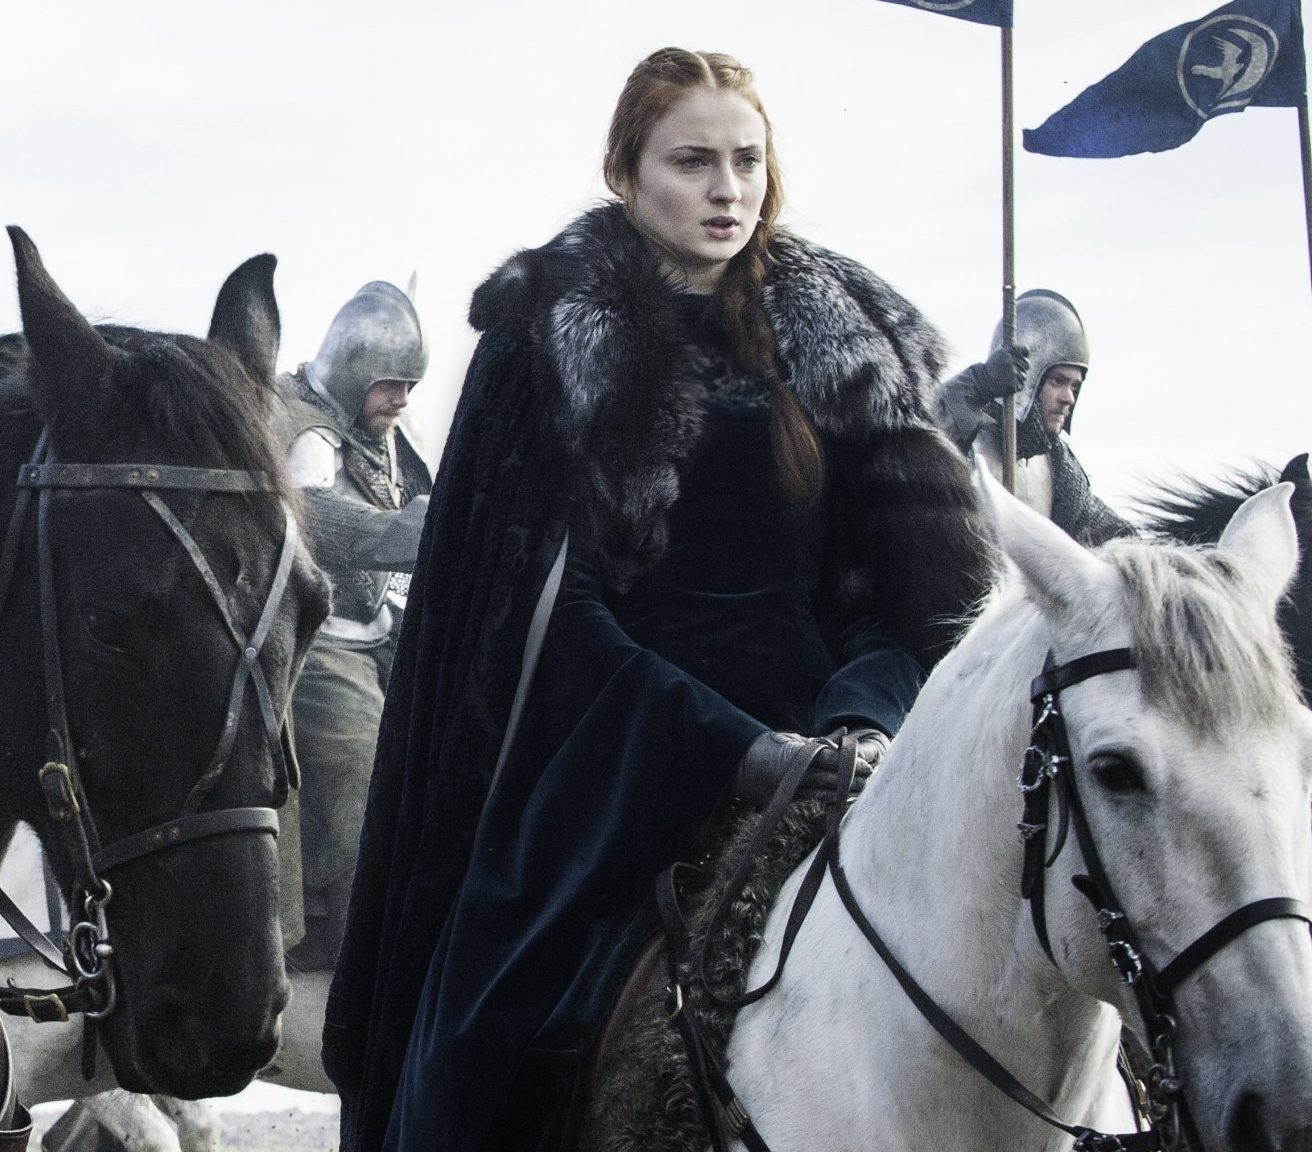 Sansa Stark and Petyr Baelish sansa stark 39739943 4500 2994 scaled e1626879732609 33 Things You Didn't Know About The Game of Thrones Cast